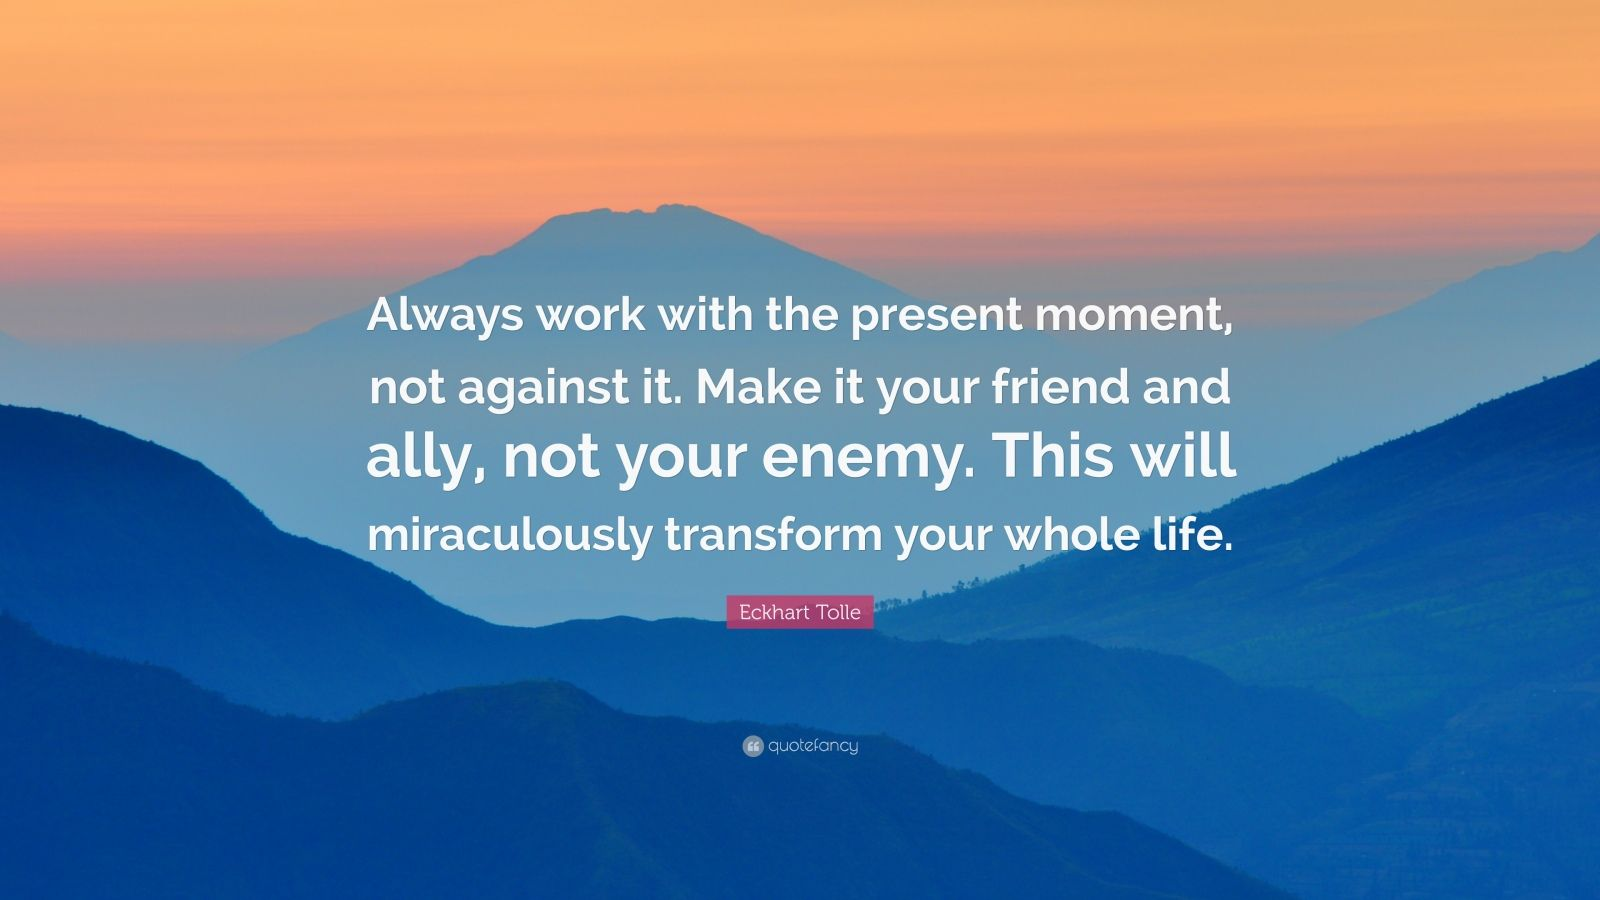 """Eckhart Tolle Quote: """"Always work with the present moment, not against it. Make it your friend and ally, not your enemy. This will miraculously transform your whole life."""""""